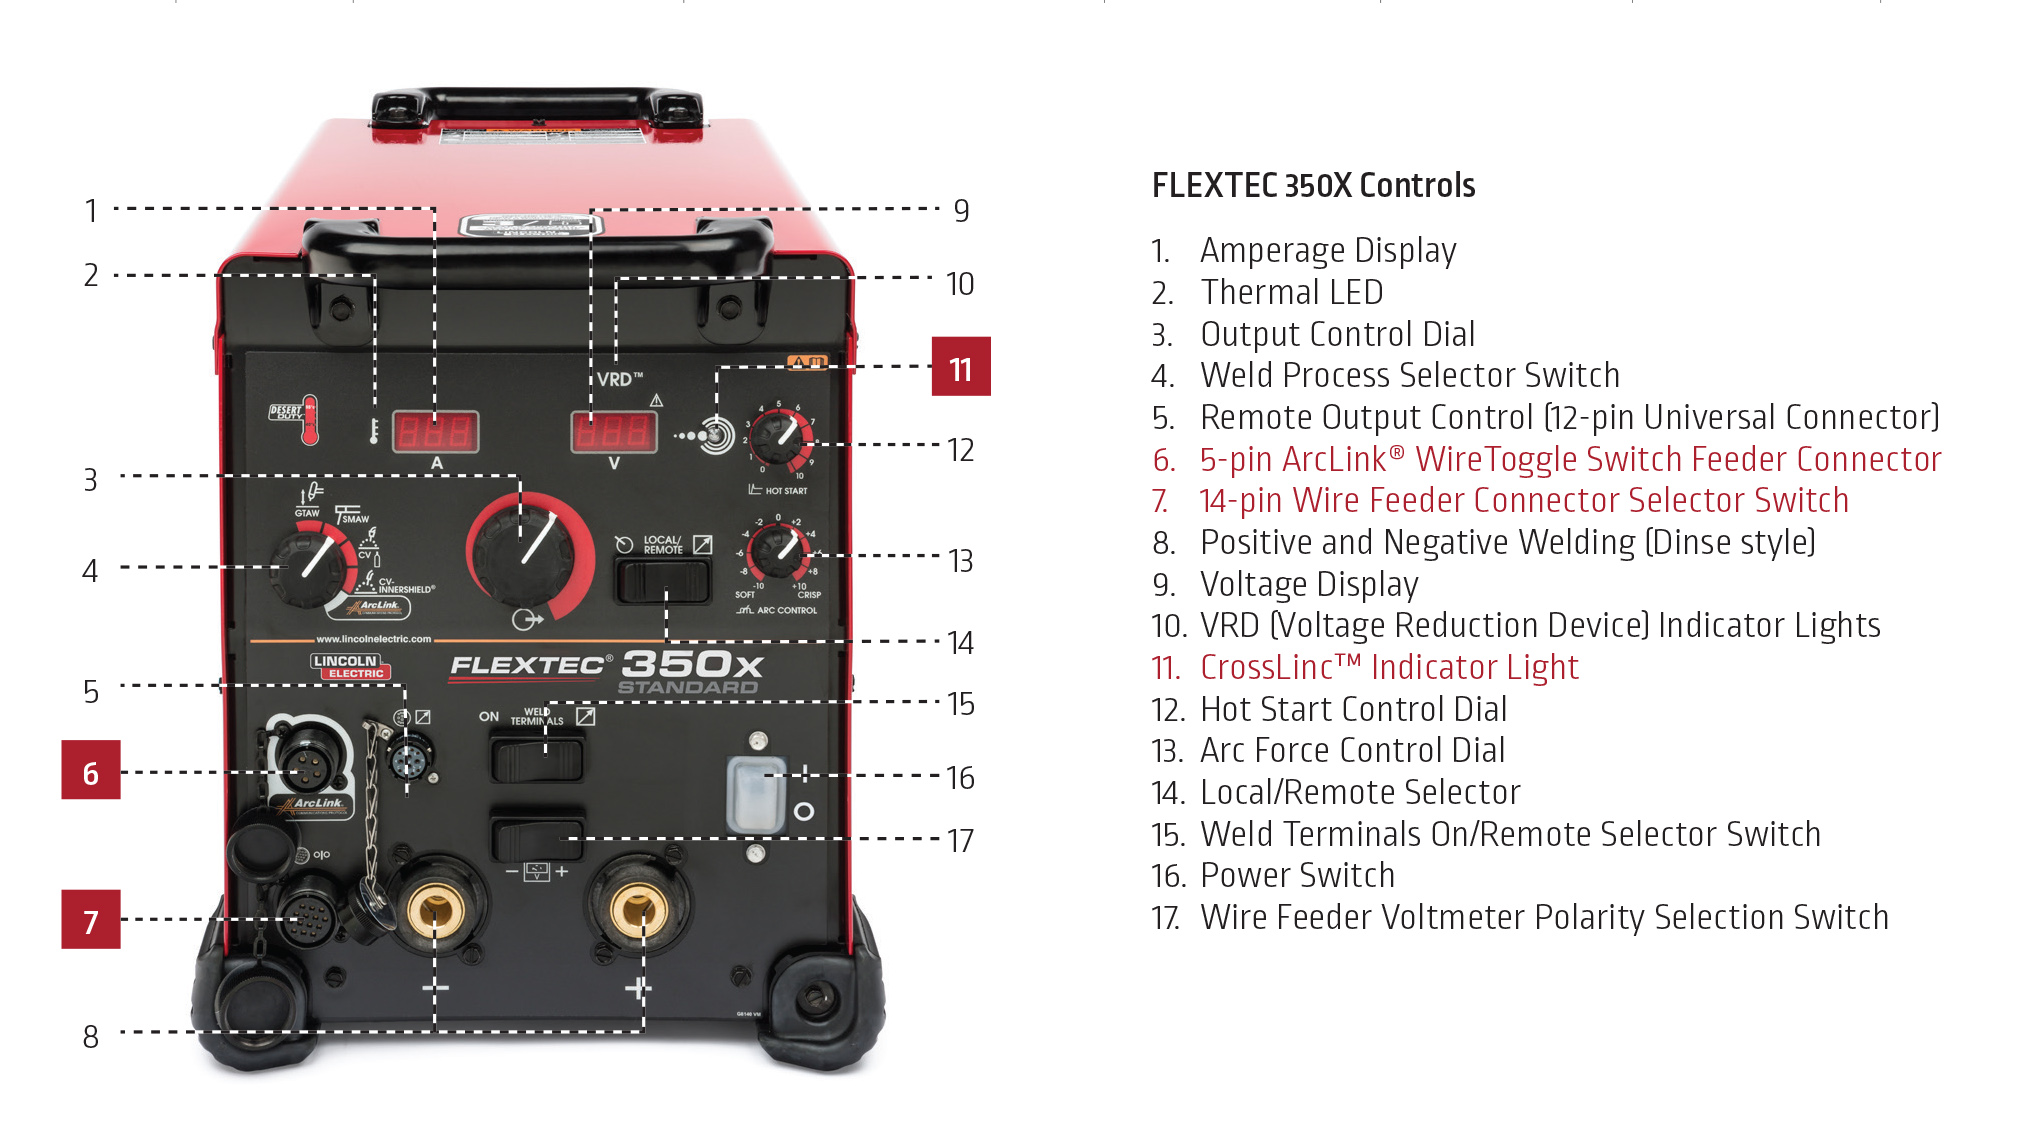 Flextec 350X Controls